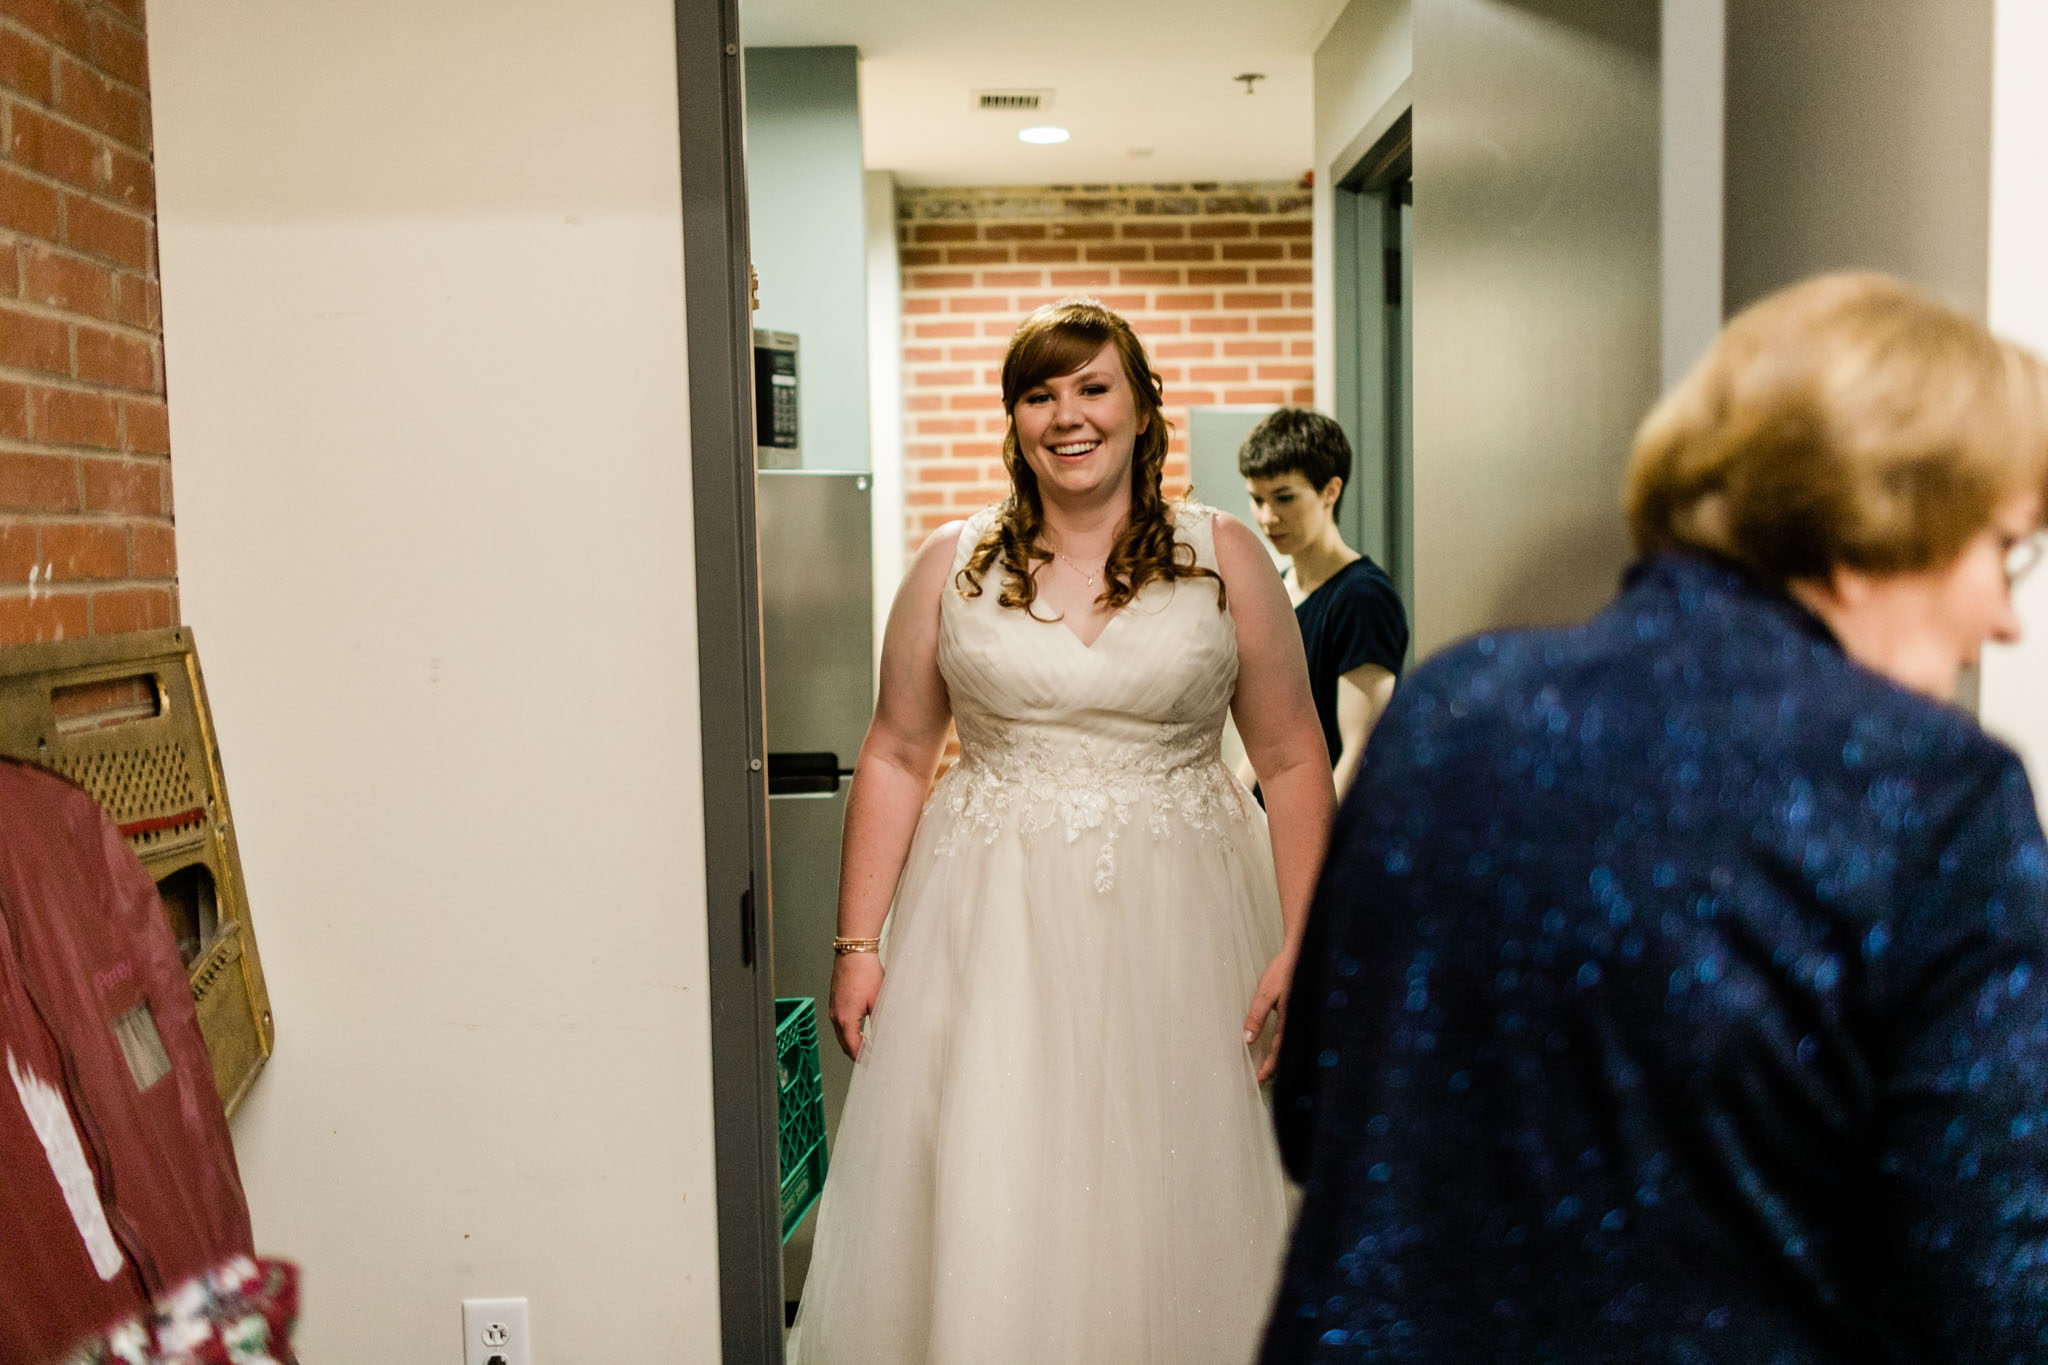 Haw River Ballroom Wedding | Durham Photographer | By G. Lin Photography | Bride in wedding dress